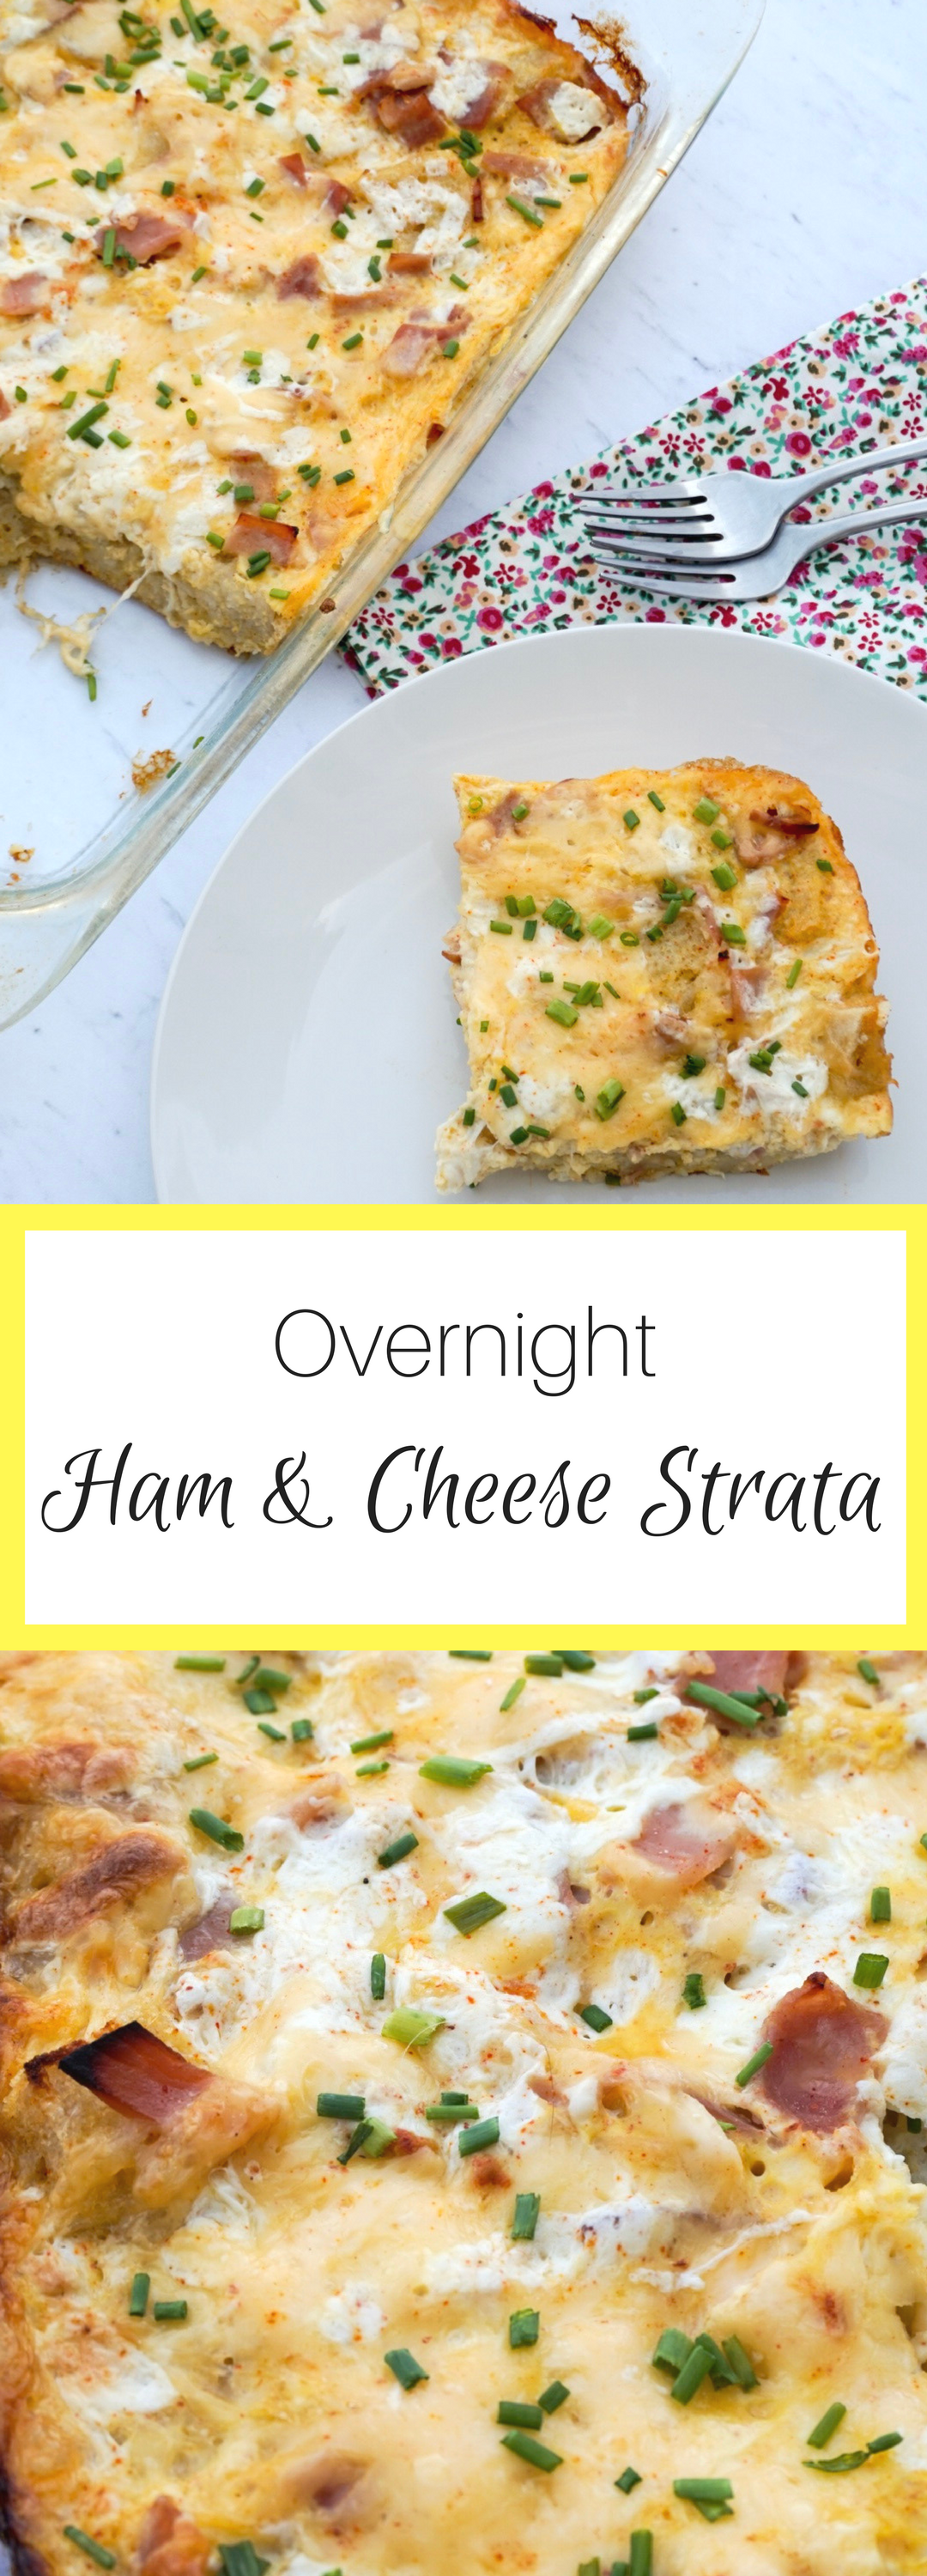 overnight ham and cheese strata recipe perfect casserole for hosting a easter or spring brunch that the whole family will love - Cheese Strata Recipes Brunch